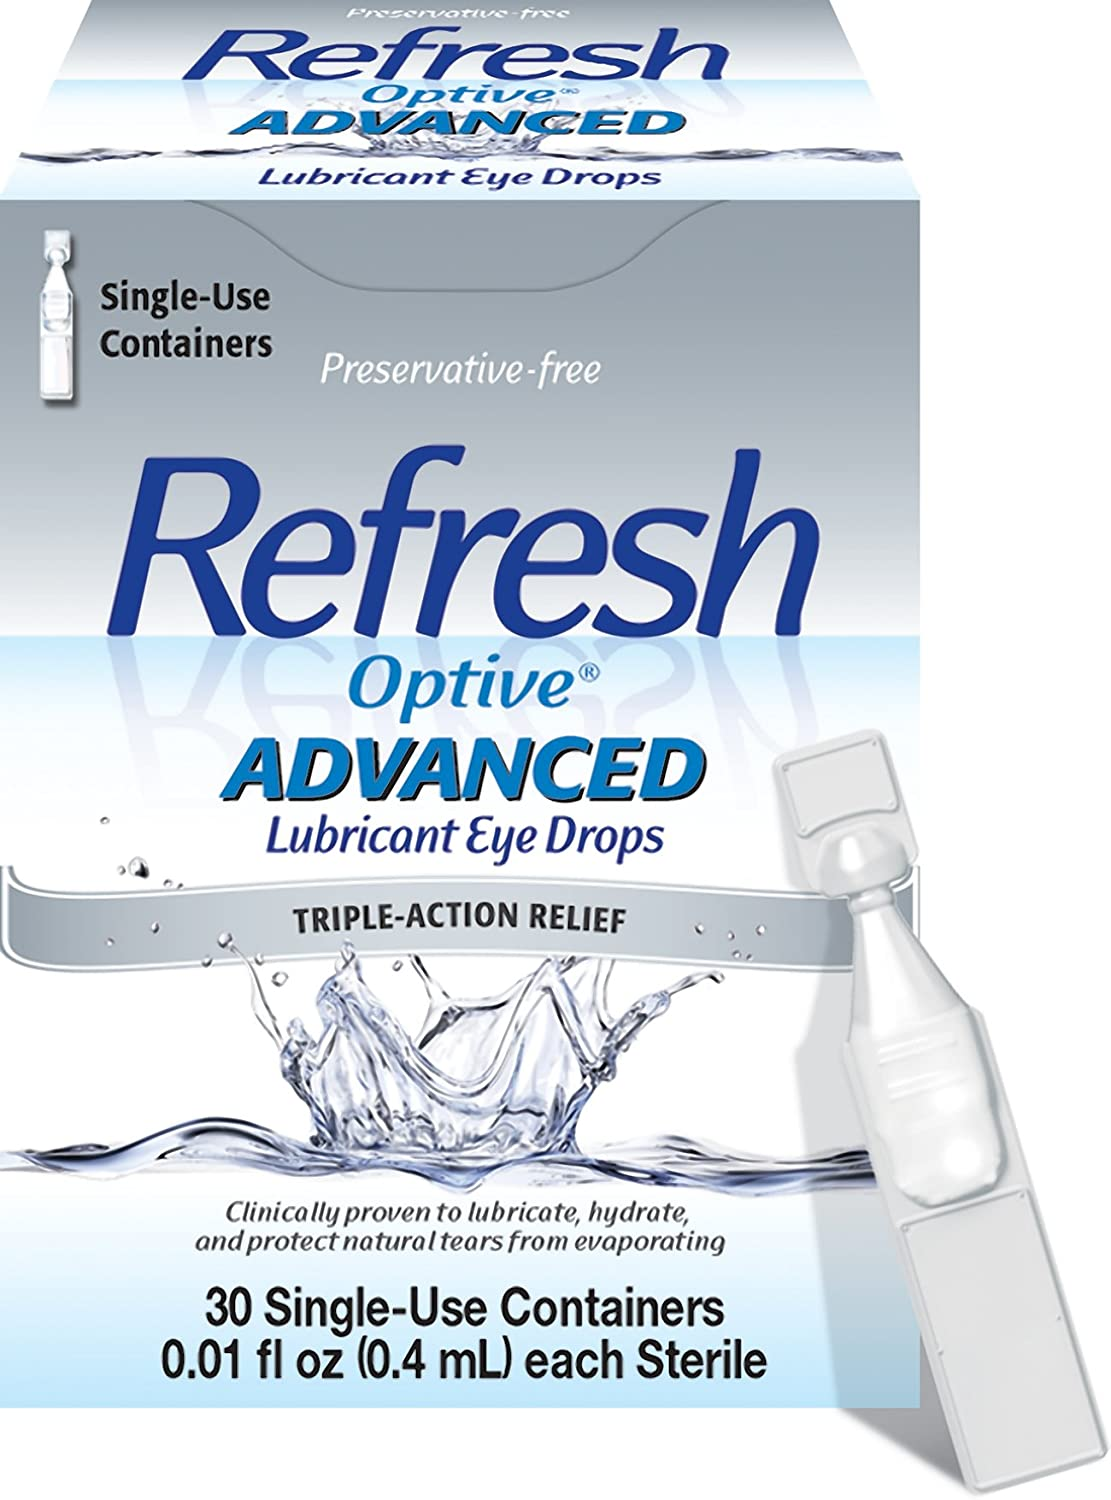 Refresh Optive Advanced Lubricant Eye Drops, 30 Single-Use Containers, 0.01 fl oz (0.4mL) Each Sterile